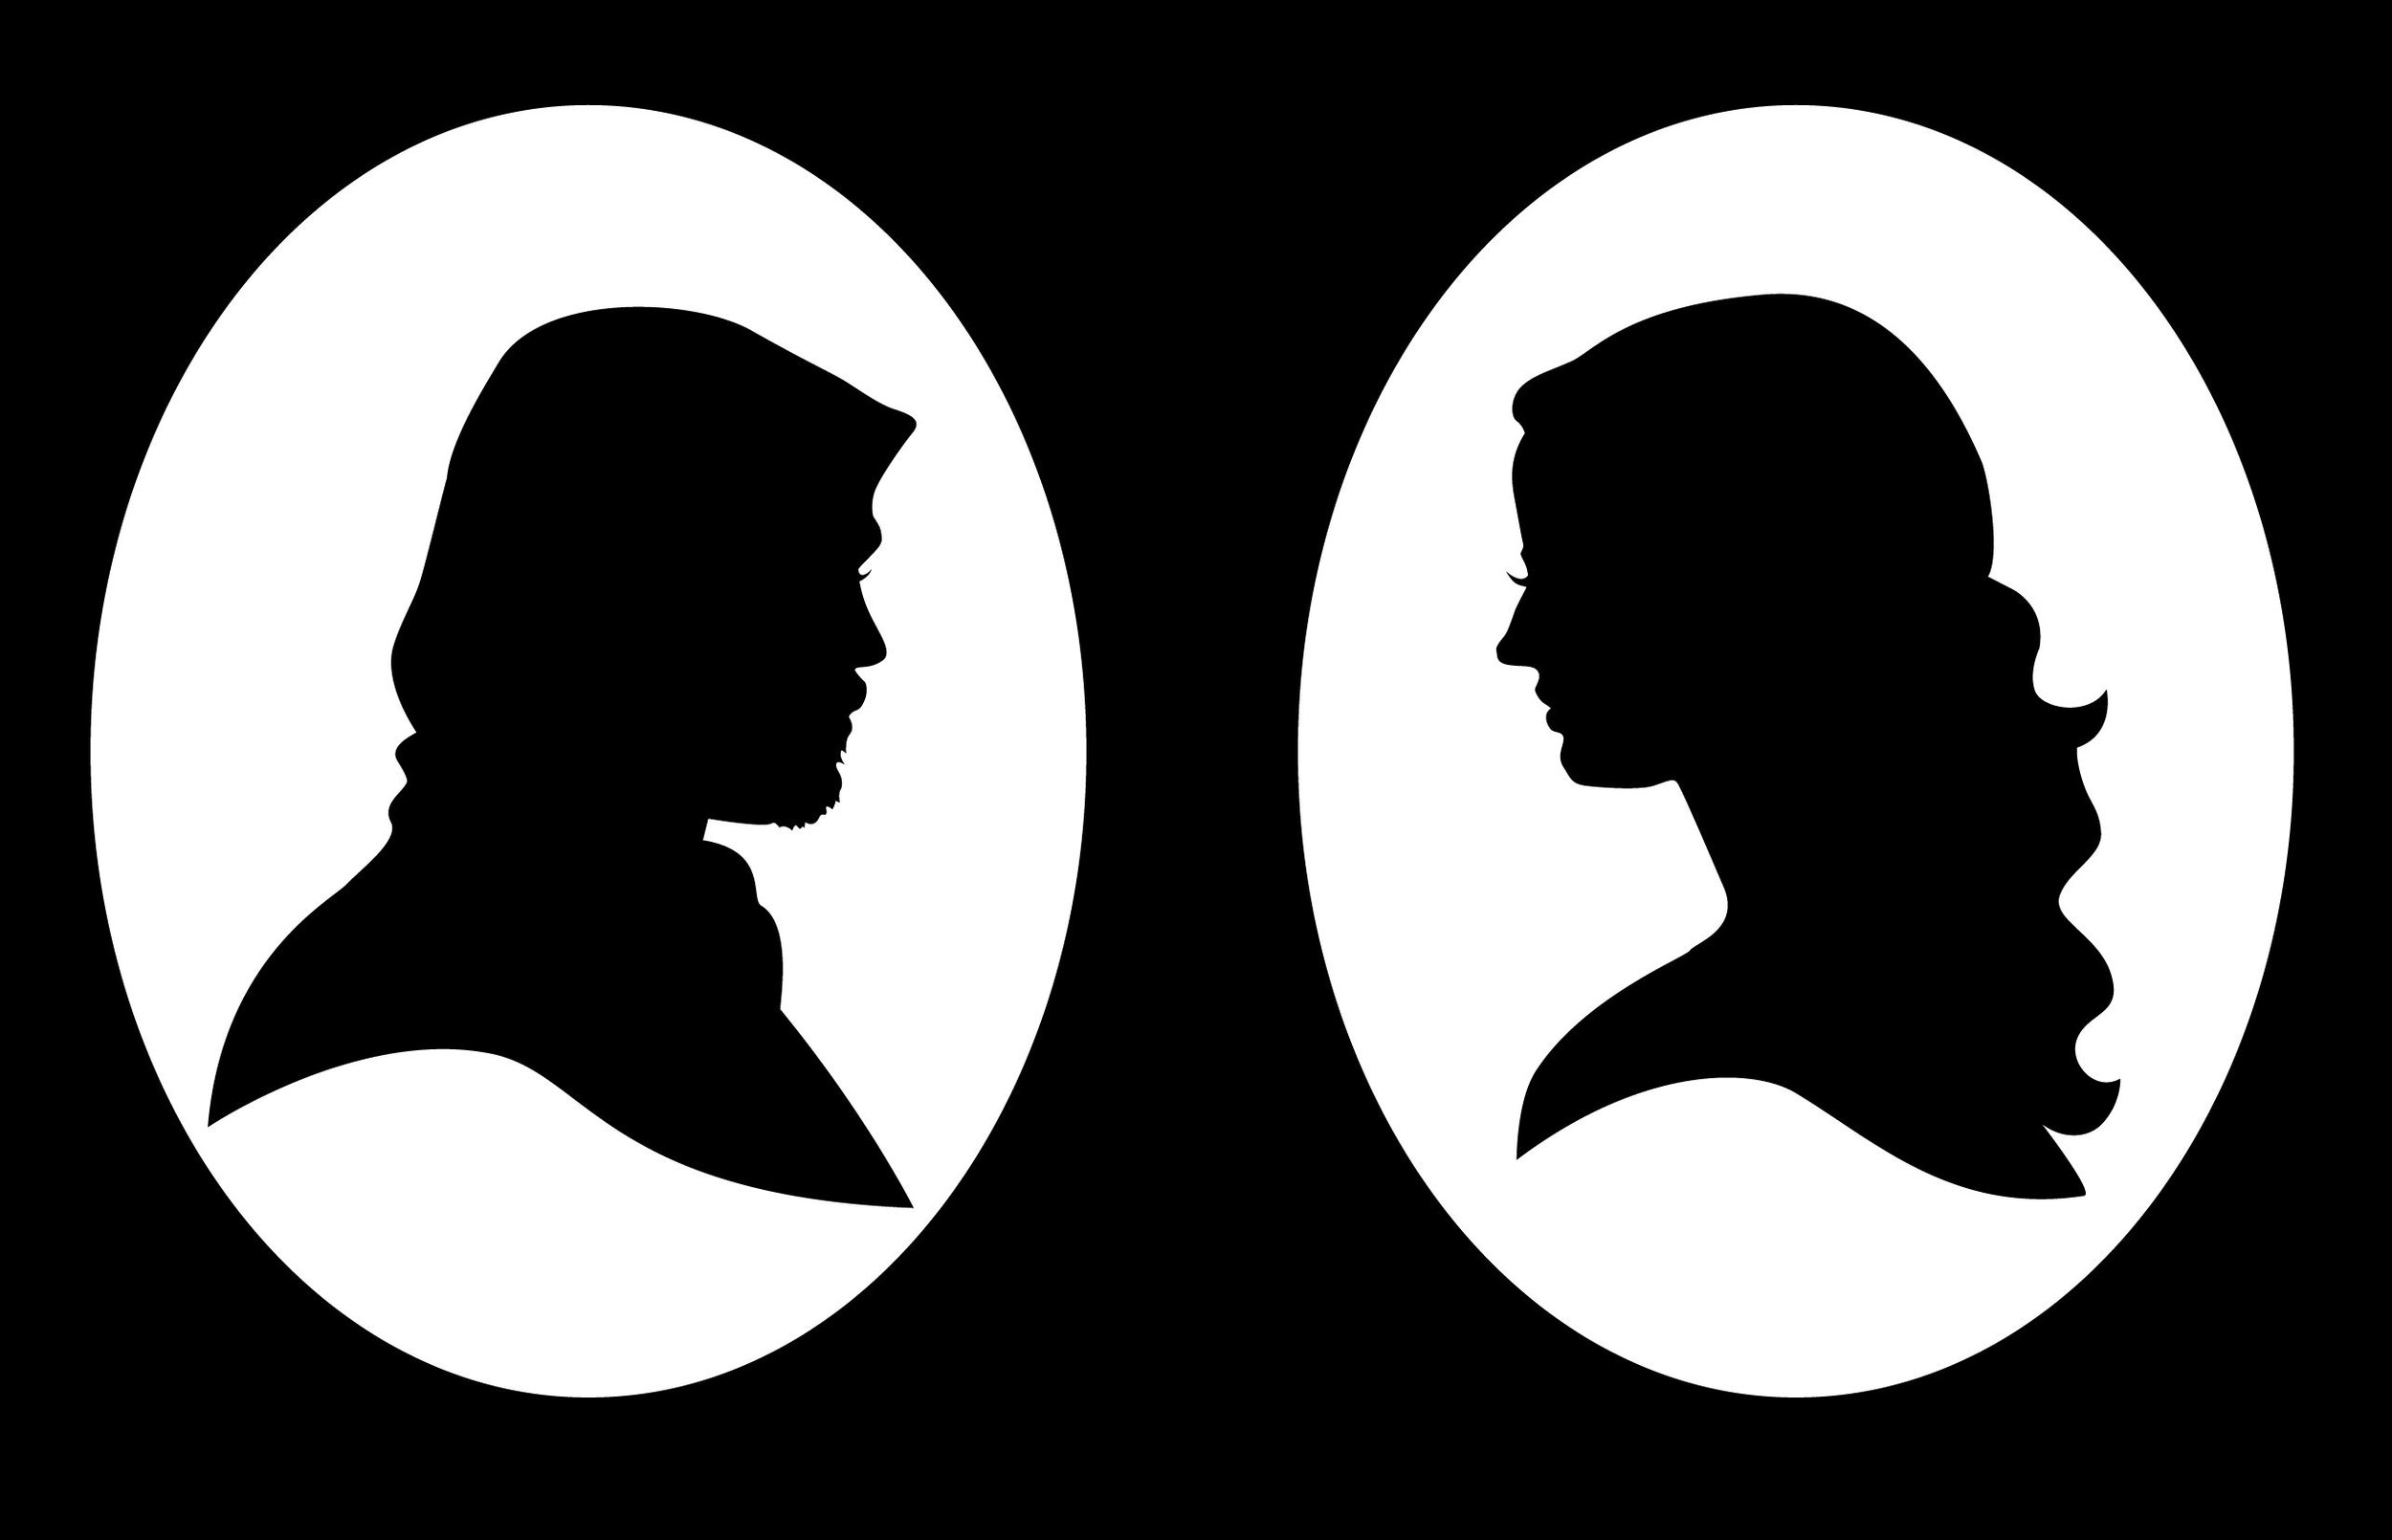 Penny Dreadful  silhouettes: Ethan & Vanessa